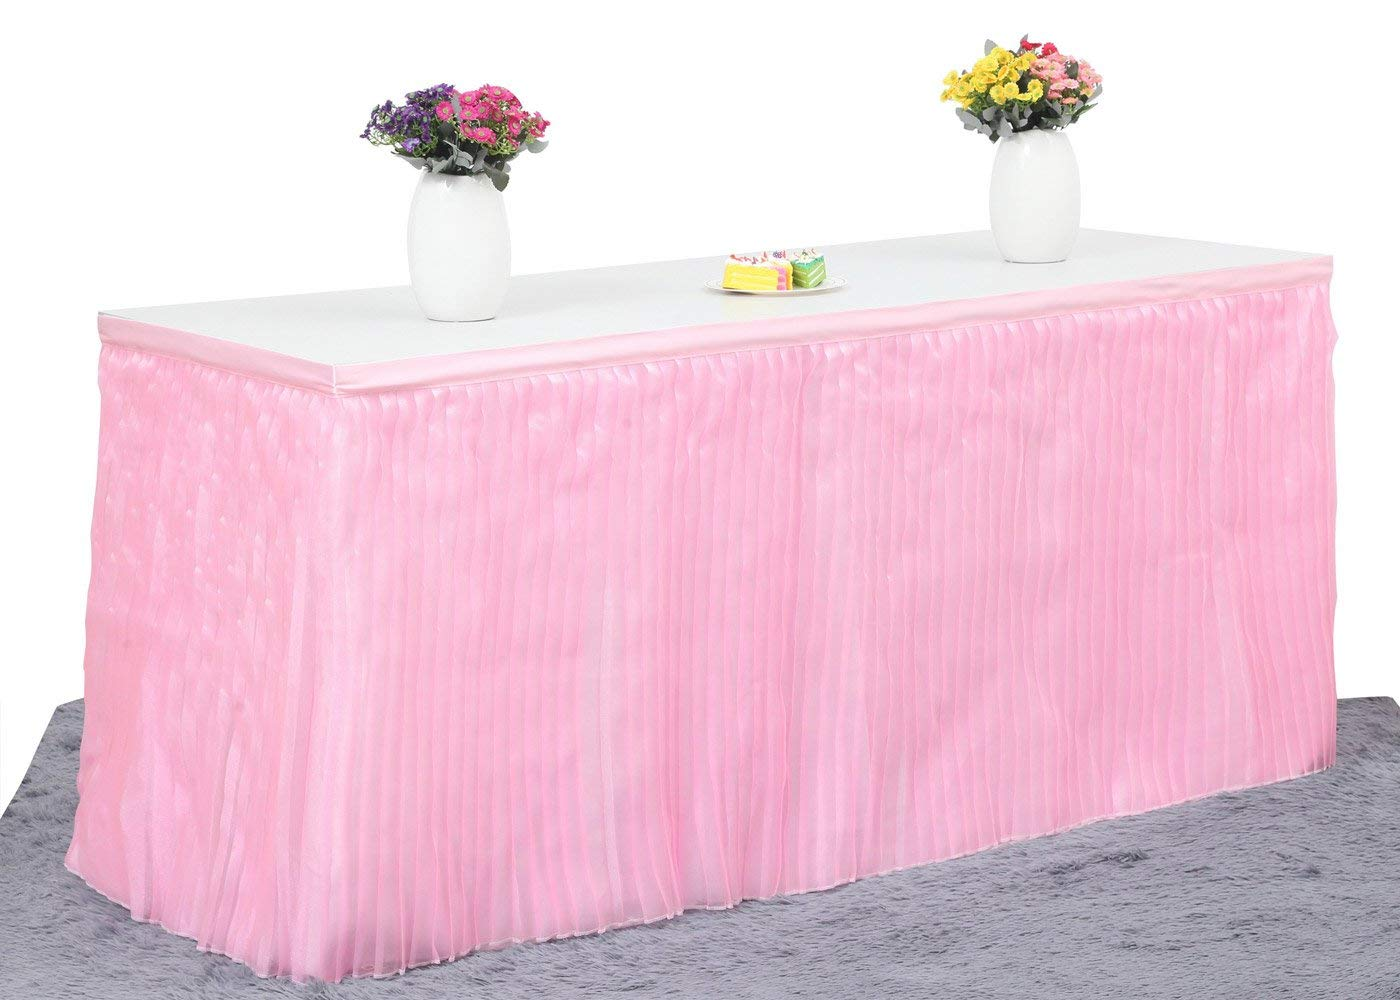 Deluxe Elegant Table Skirt For Party Decoration, Events, Meetings, Birthdays, Wedding, Baby Shower and Home Decoration by HBB Magic (9ft, Pink) …